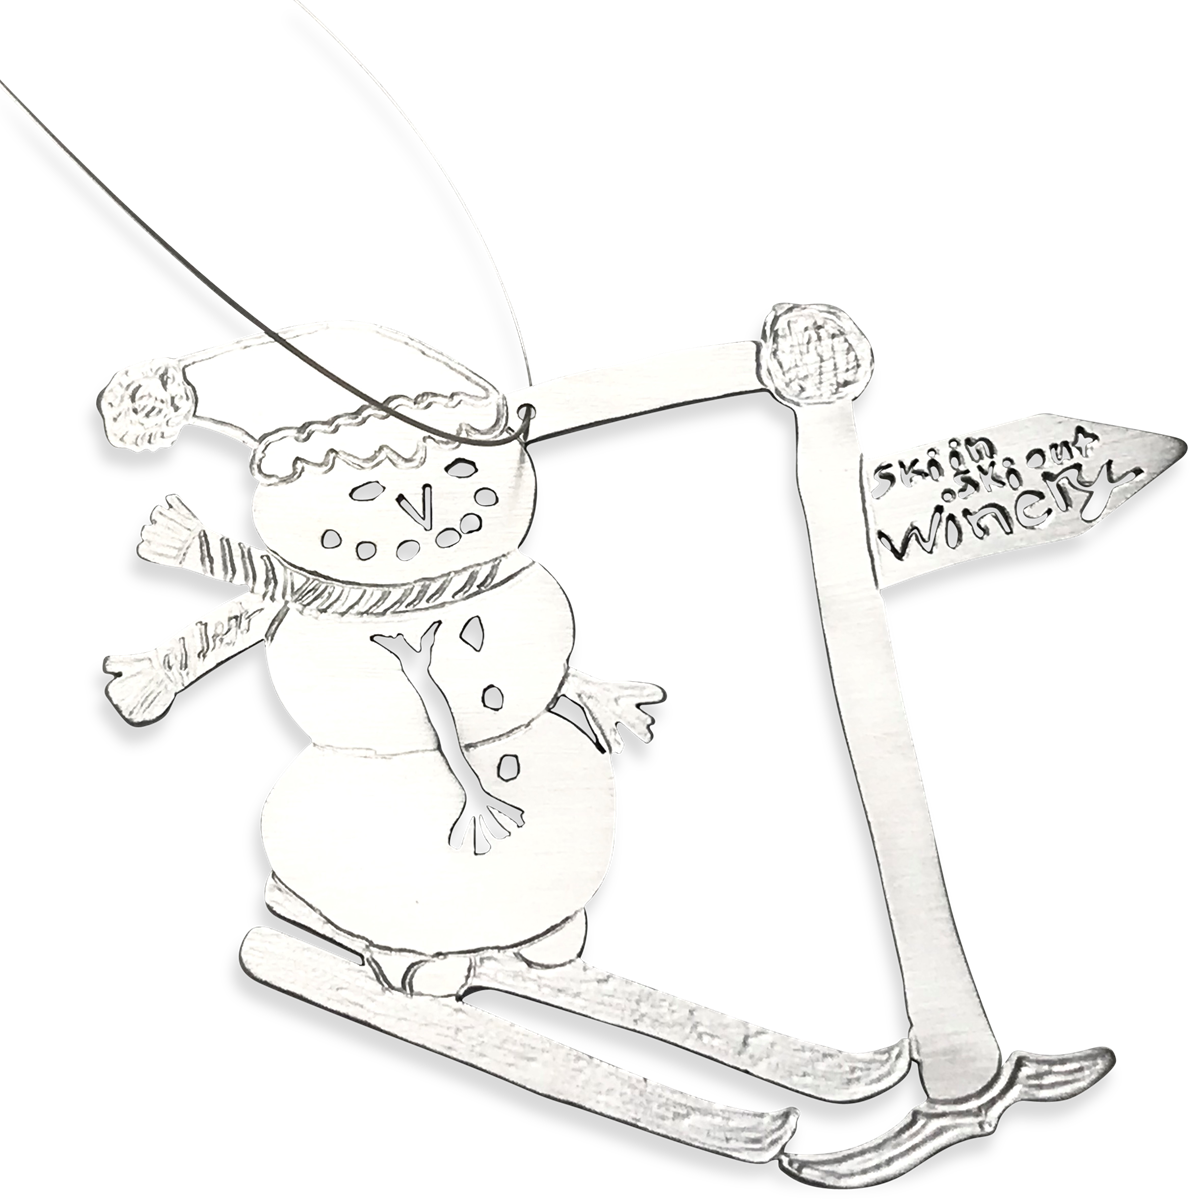 Sledding drawing handmade. Christmas ornament from your